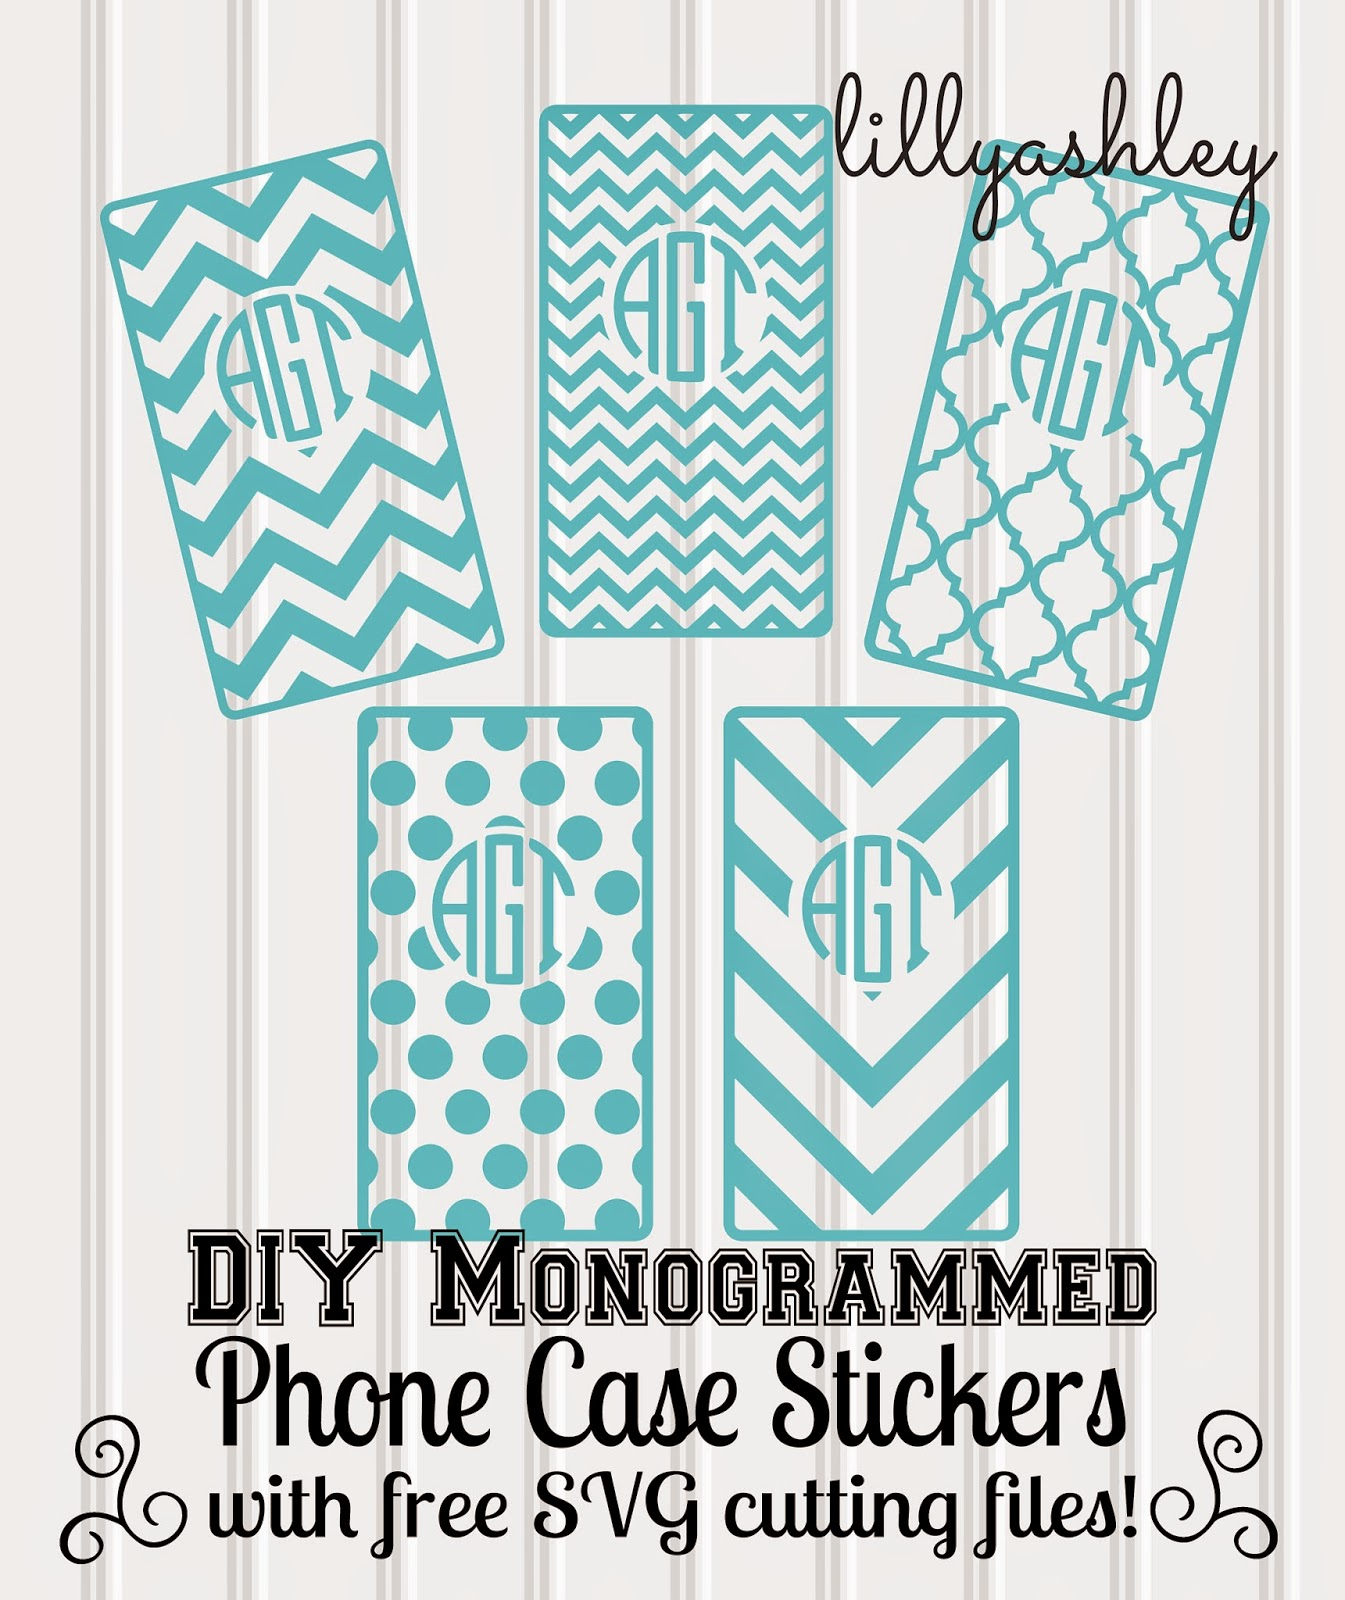 Make it create by lillyashley freebie downloads diy for Diy phone case template